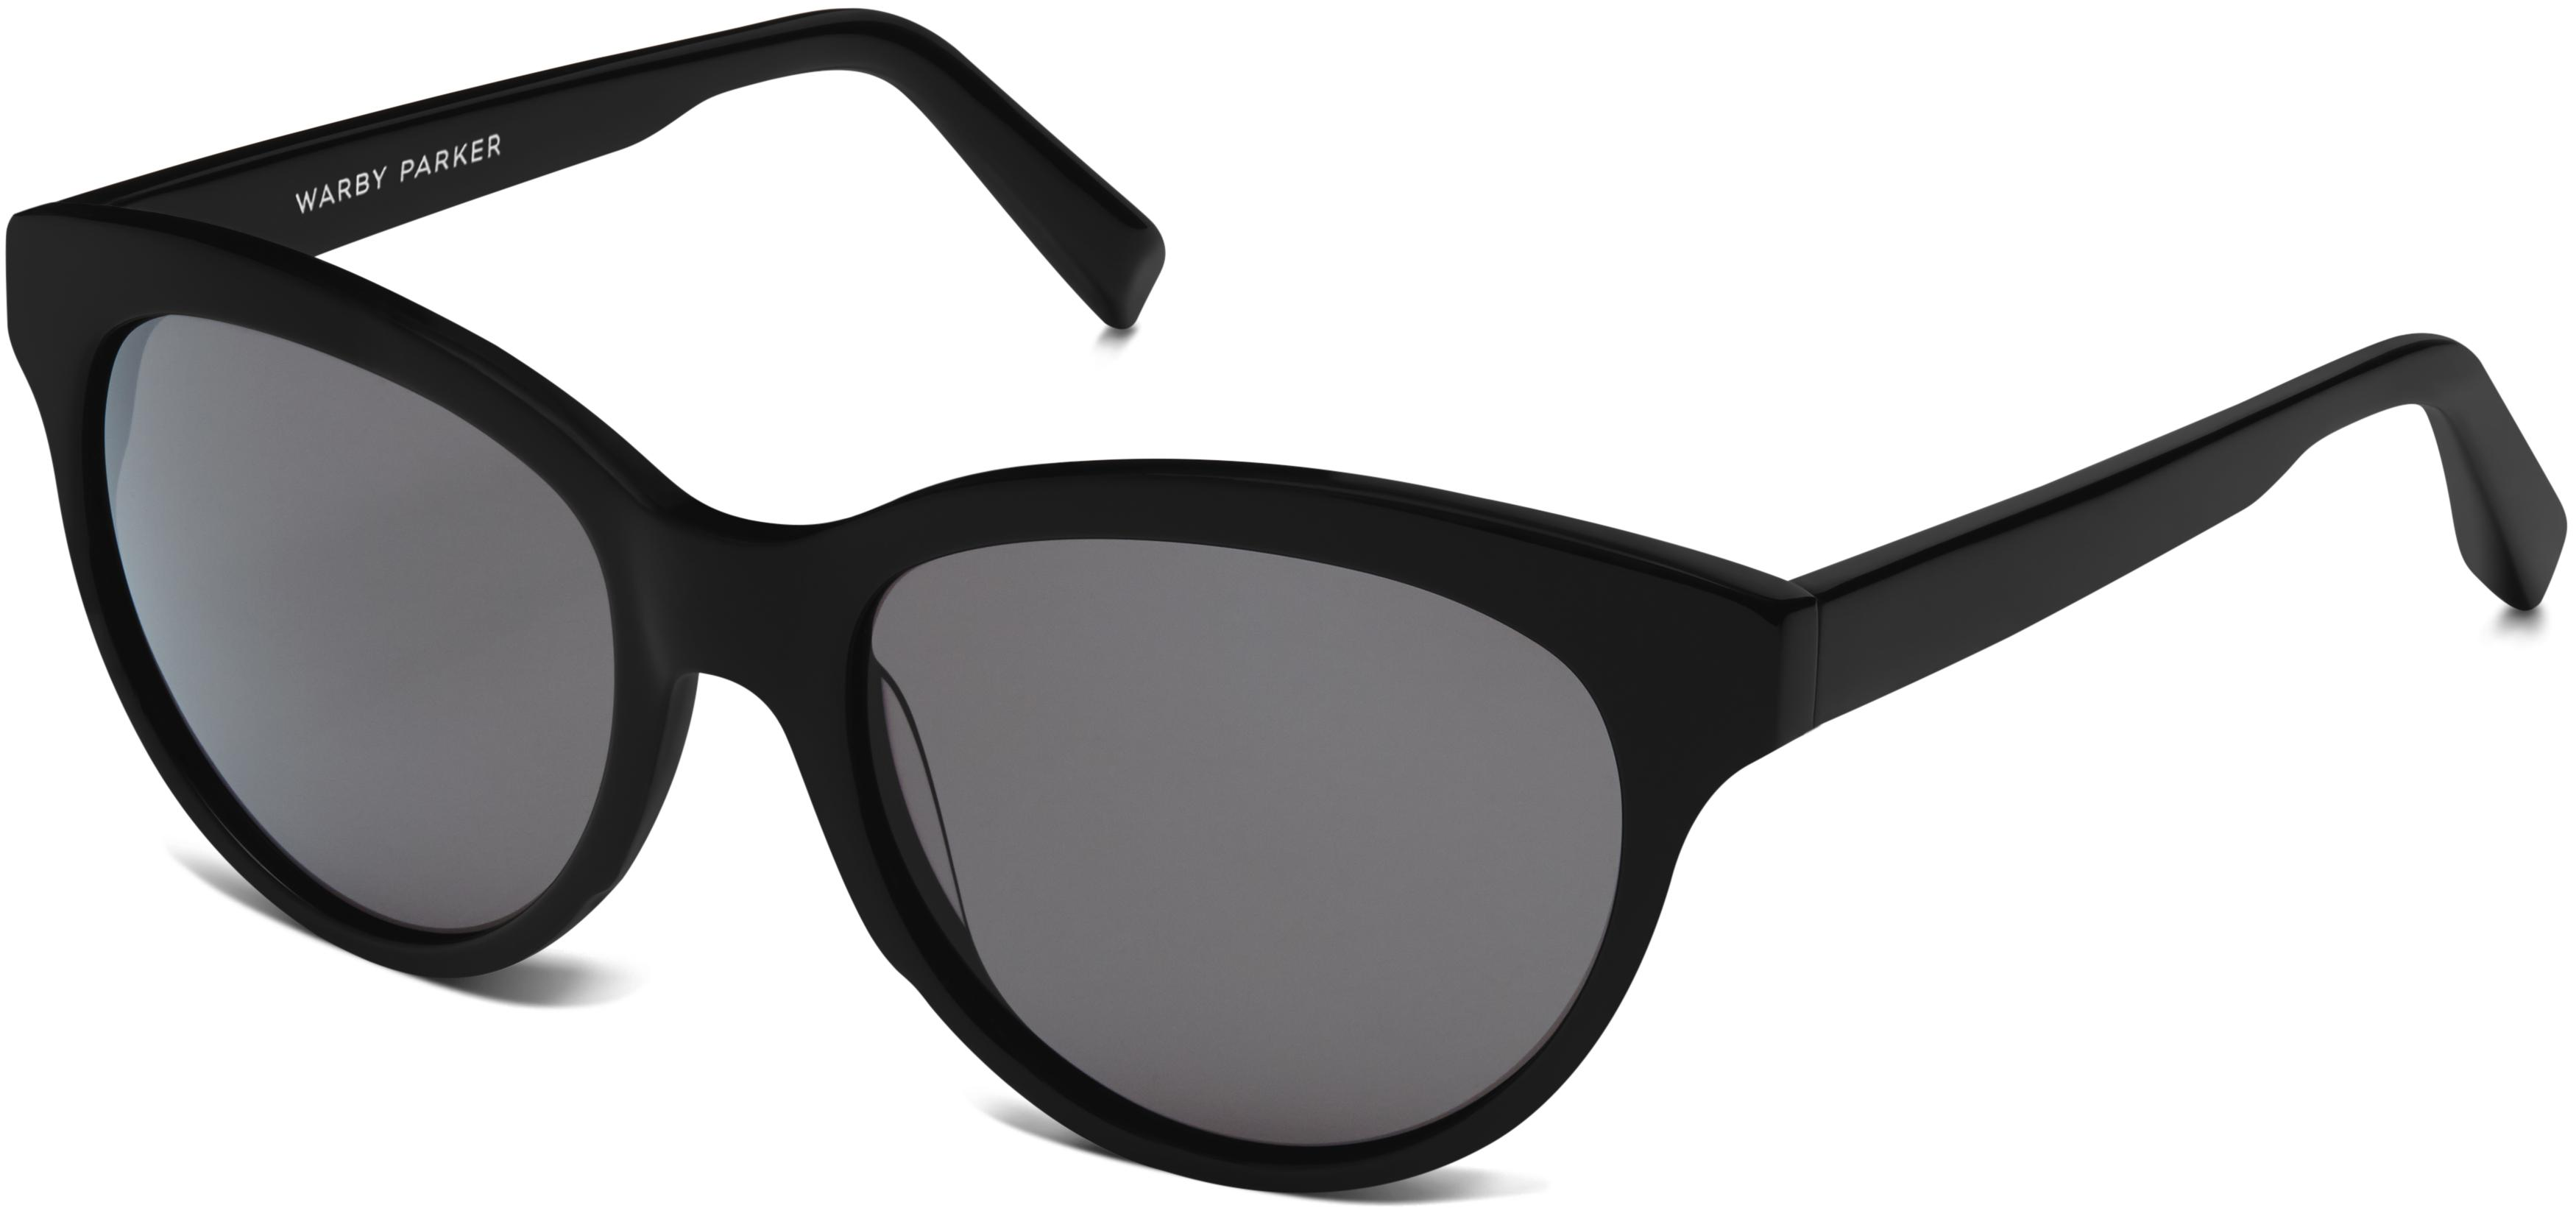 34ec736ae5 Piper sunglasses in jet black with classic grey lenses for women warby  parker jpg 3500x1656 Piper